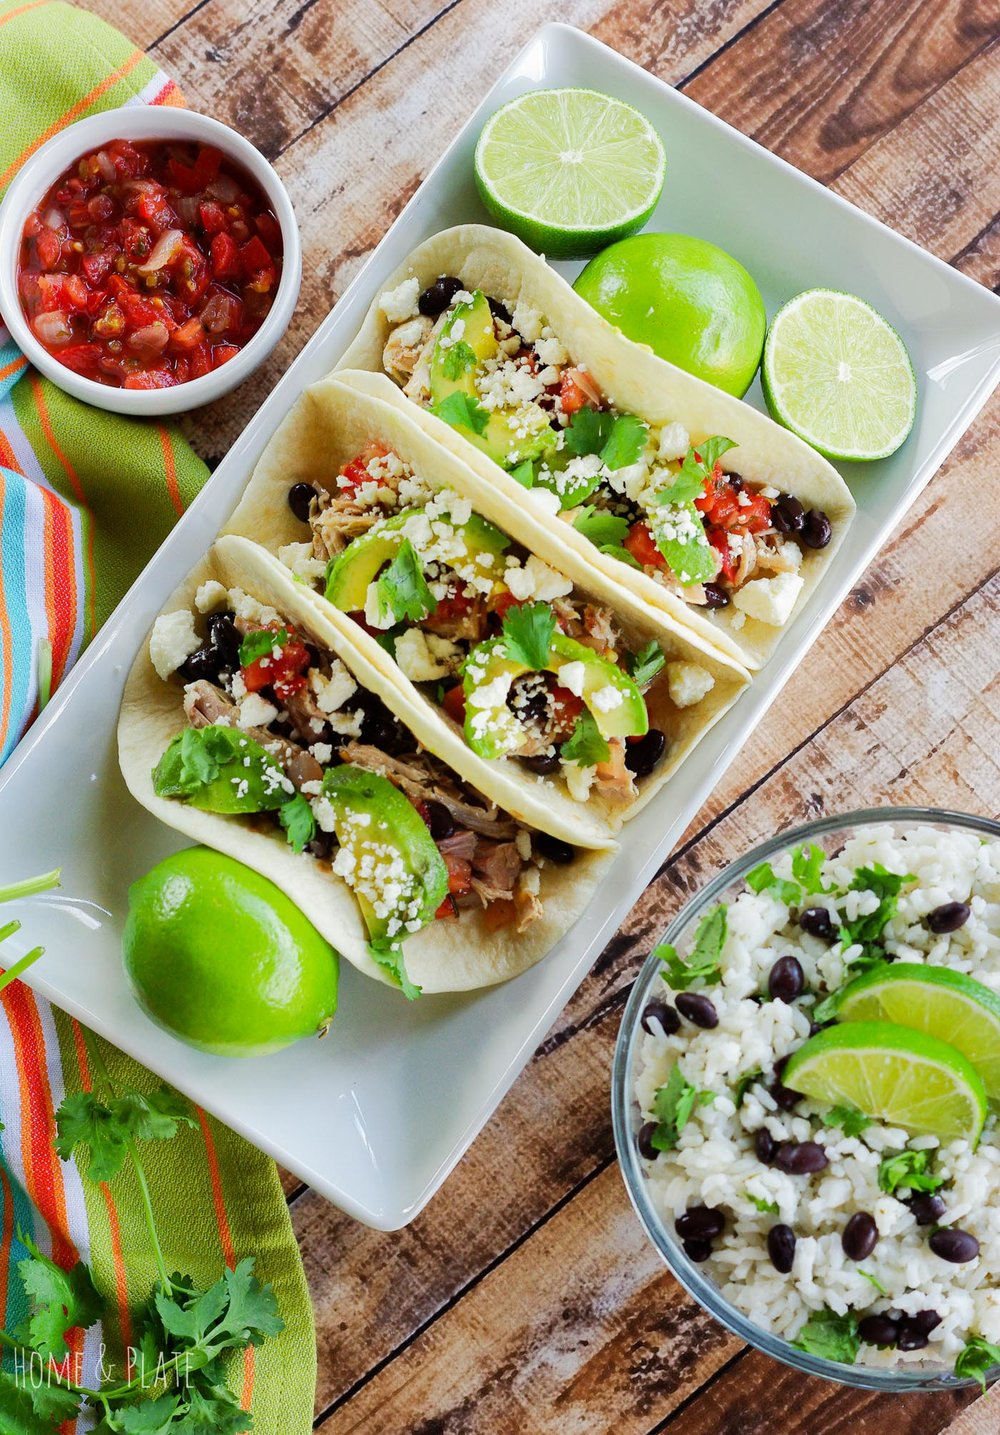 Pulled Pork Tacos aka Pork Carnitas | Home & Plate